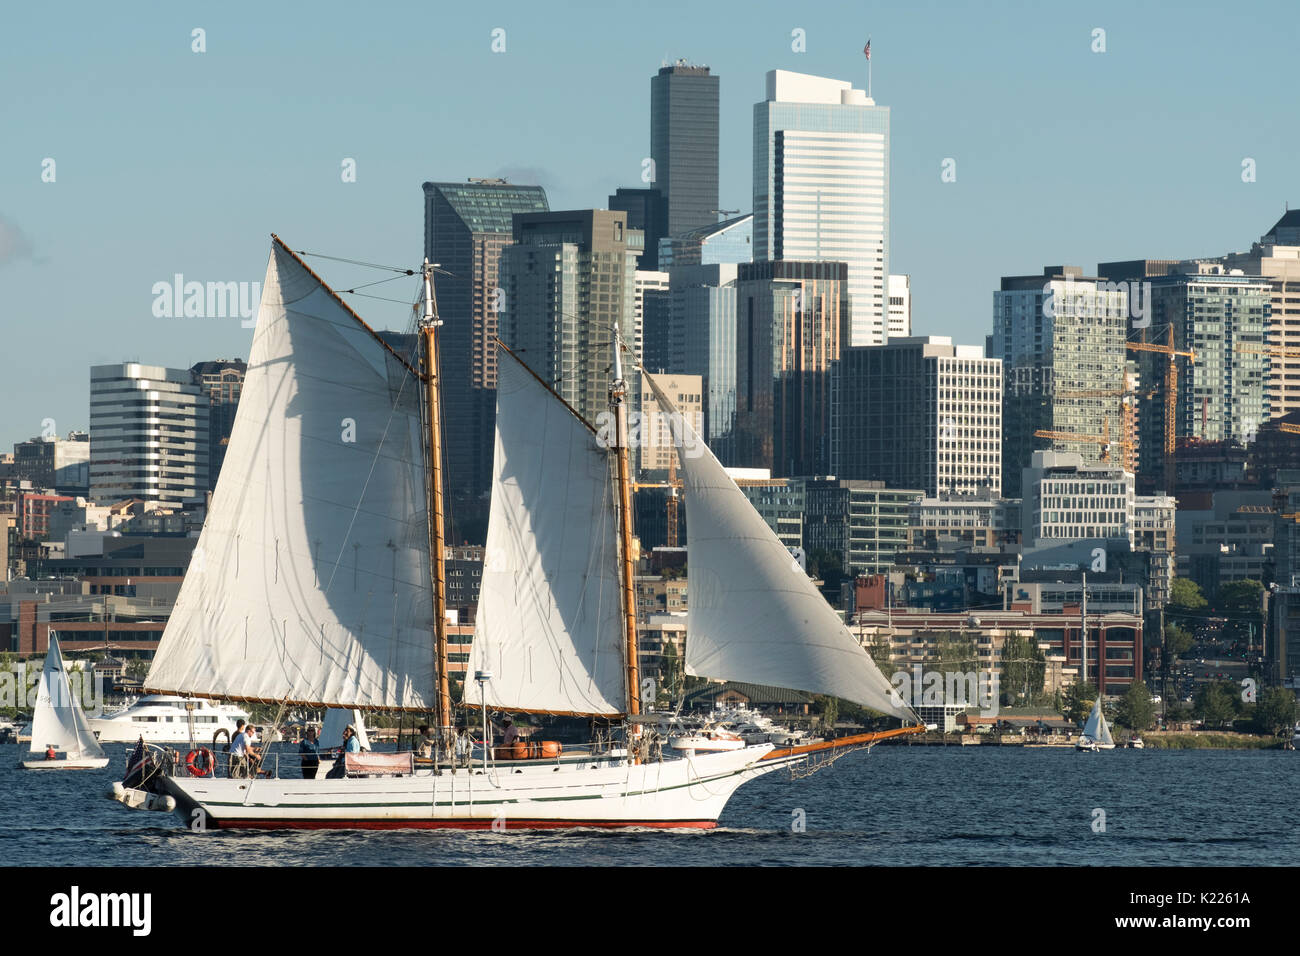 Scooner under full sail on Lake Union, Seattle, Washington, USA - Stock Image